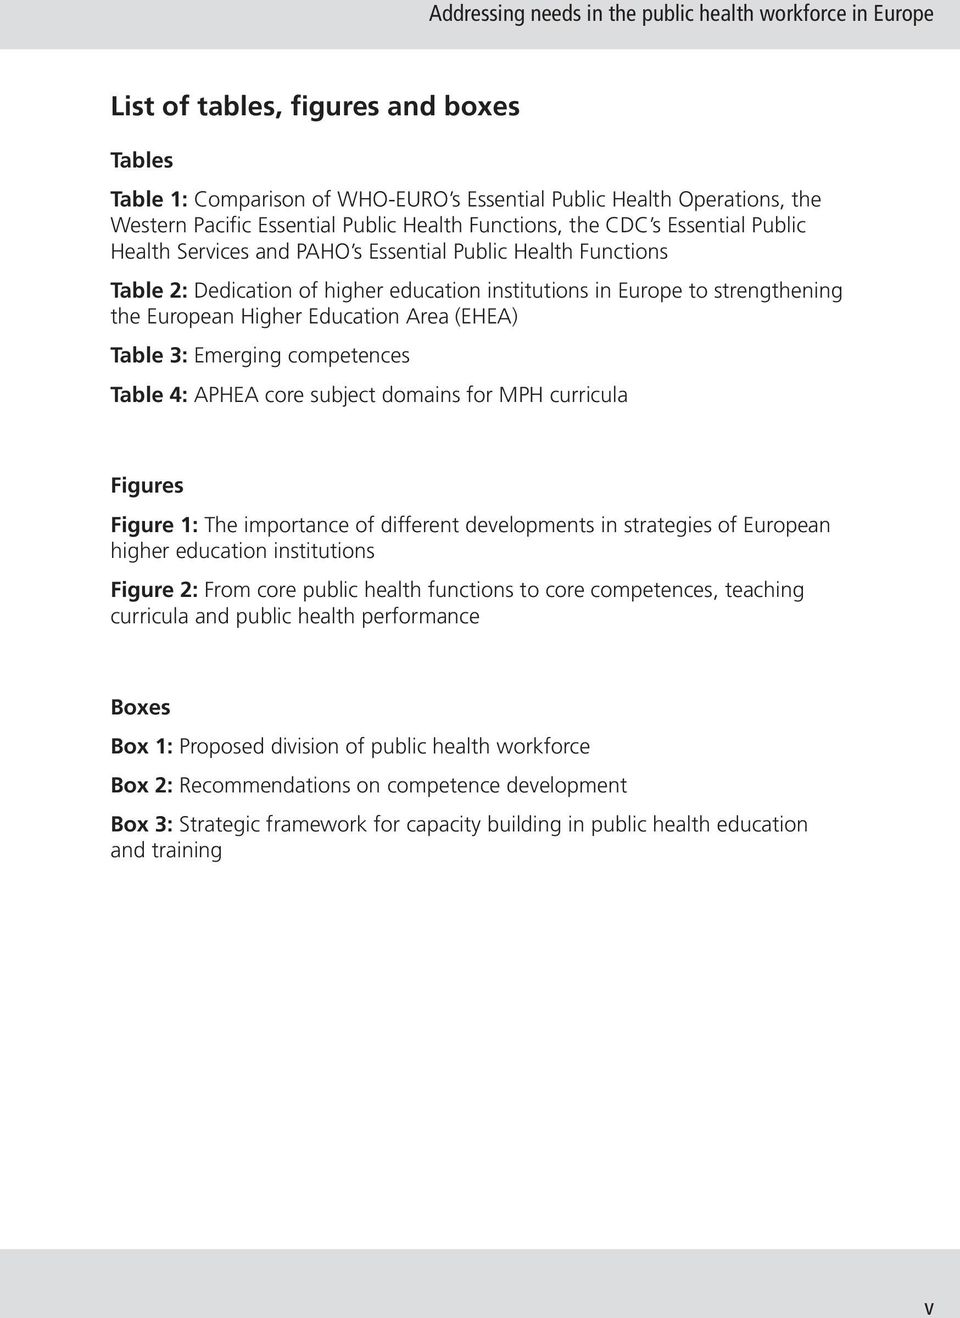 European Higher Education Area (EHEA) Table 3: Emerging competences Table 4: APHEA core subject domains for MPH curricula Figures Figure 1: The importance of different developments in strategies of